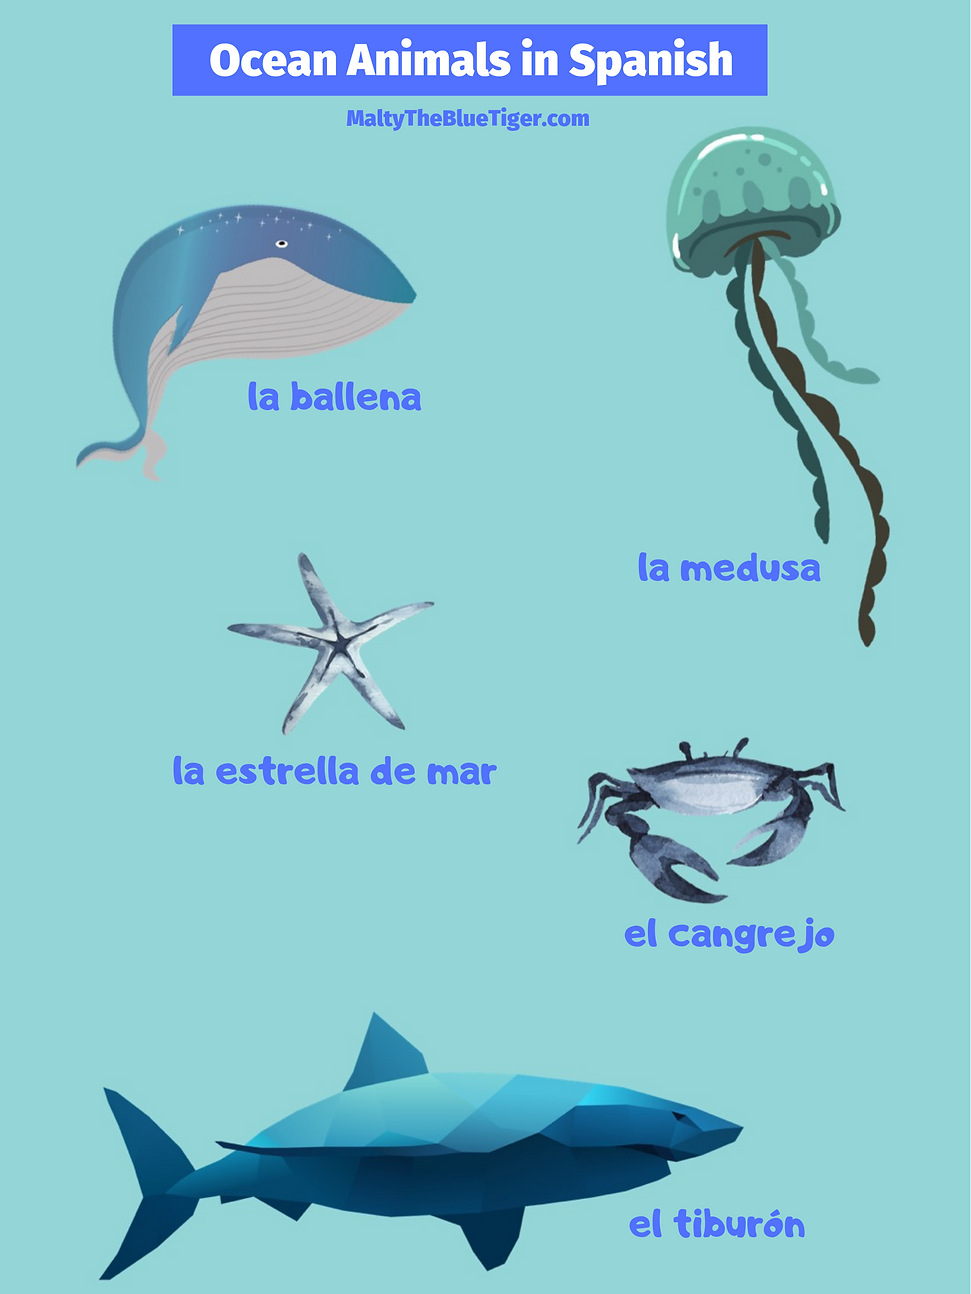 ocean-animals-in-spanish.png